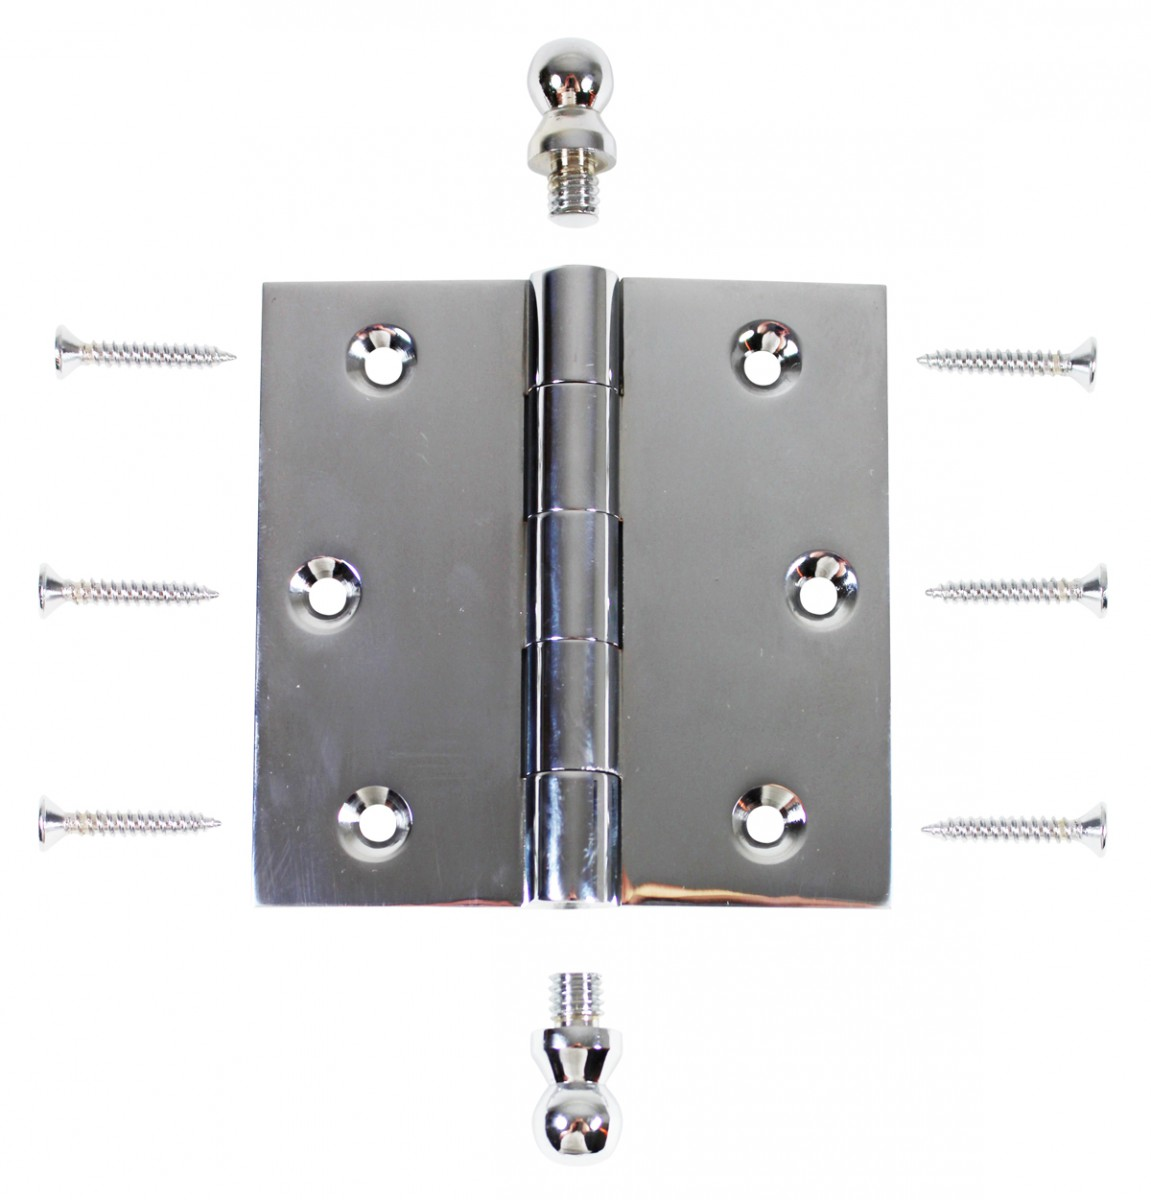 Chrome Solid Brass Cabinet Hinge Ball Tip 3 12 Pack of 2 Door Hinges Door Hinge Solid Brass Hinge